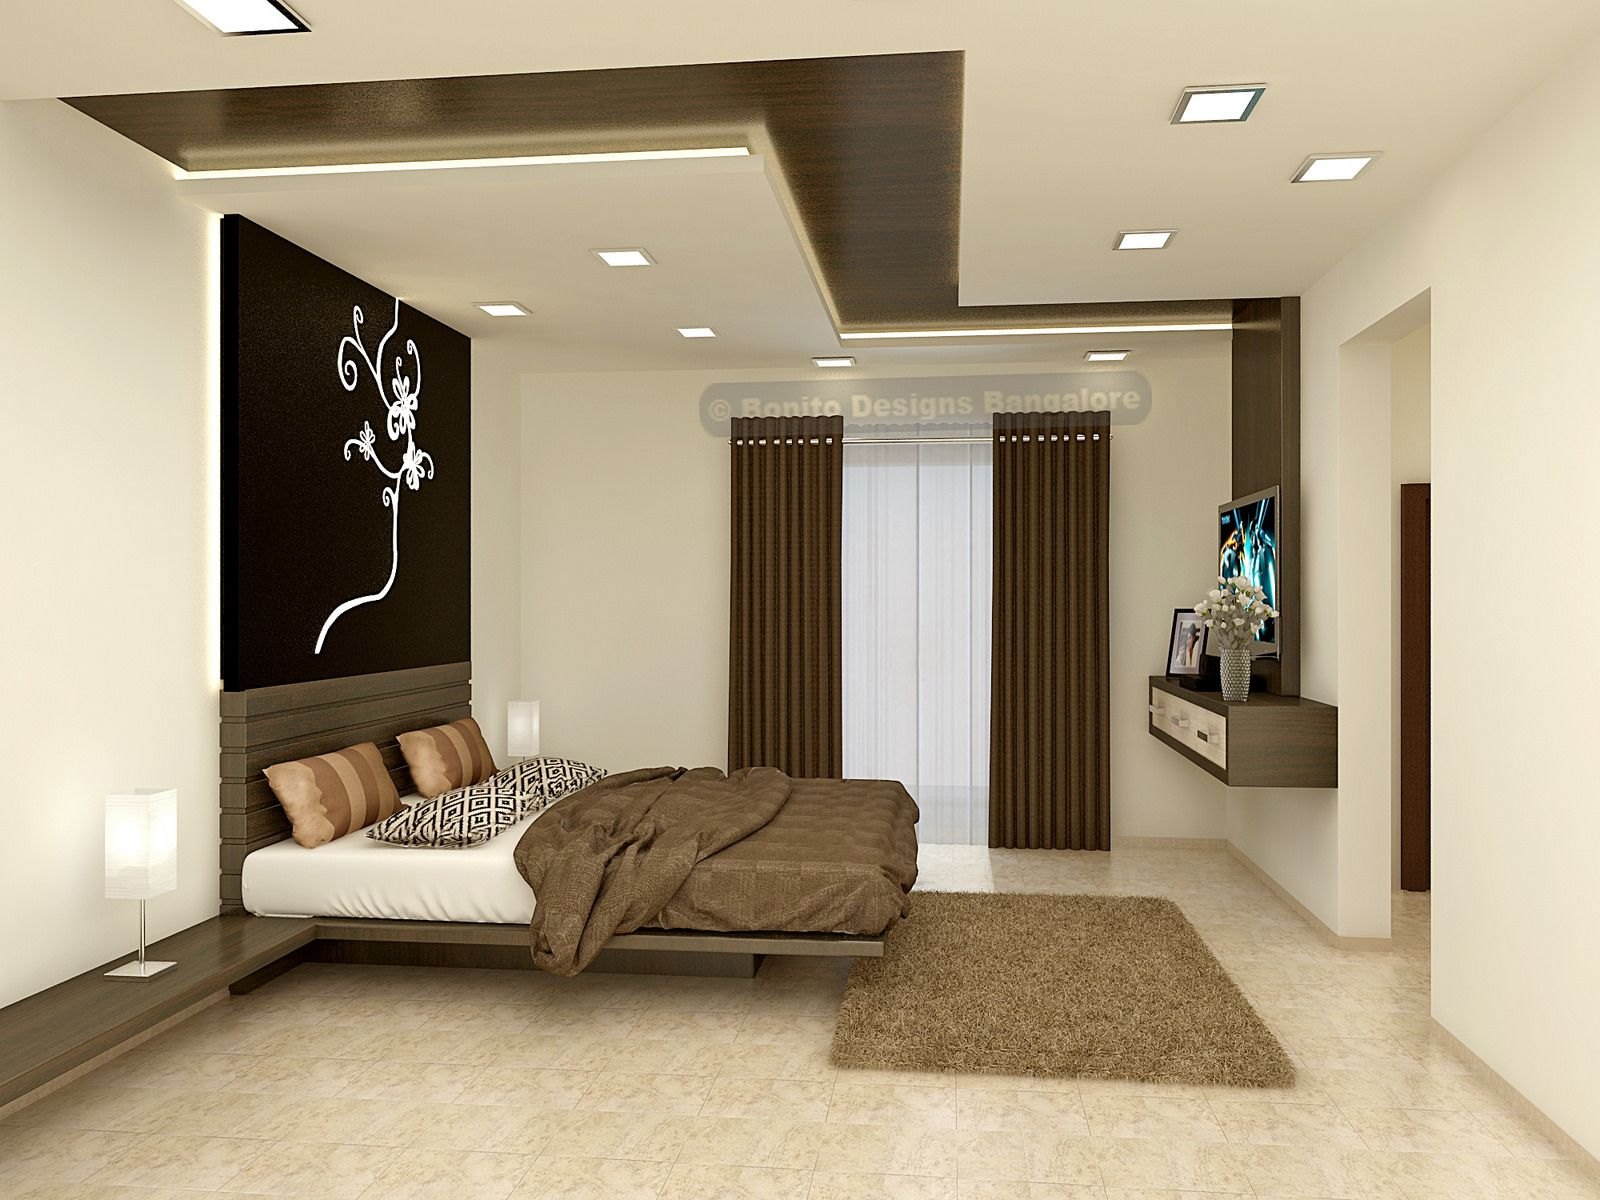 Ceiling Designs For Bedrooms Amazing Sandepmbr 1  Ceilings Bedrooms And Ceiling Design Decoration